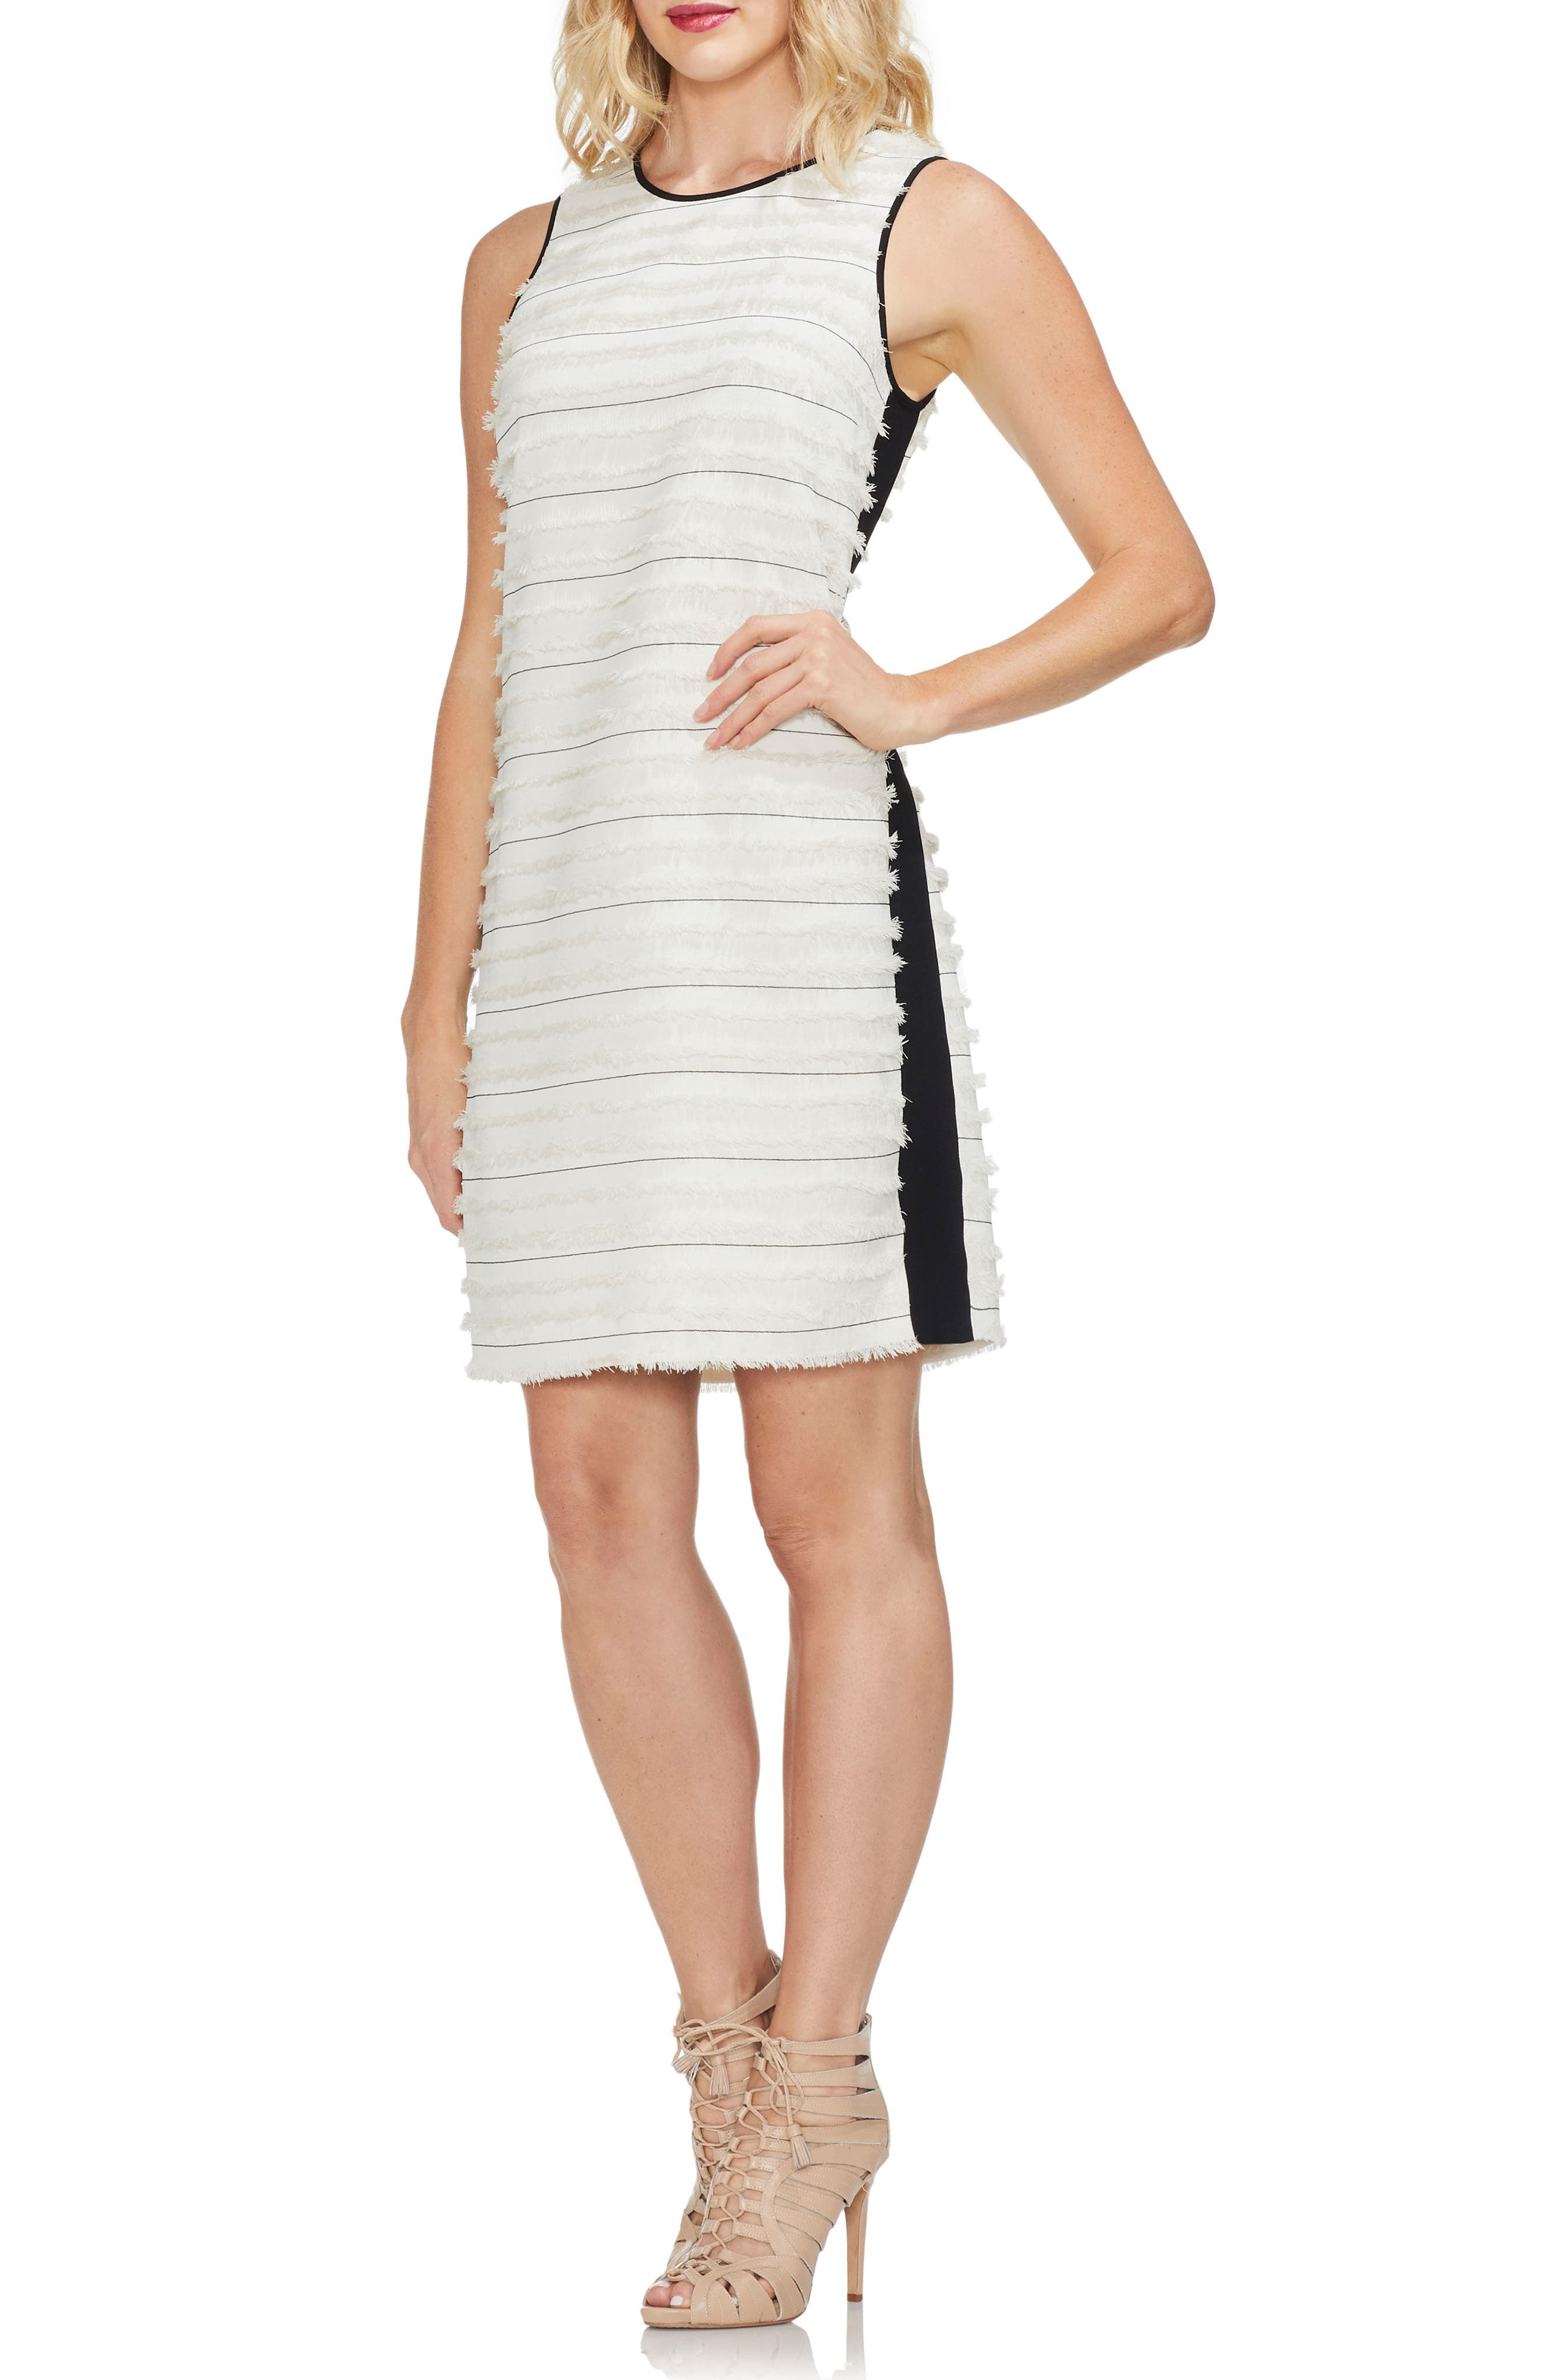 Vince Camuto Clipped Stripe Mixed Media Dress, White